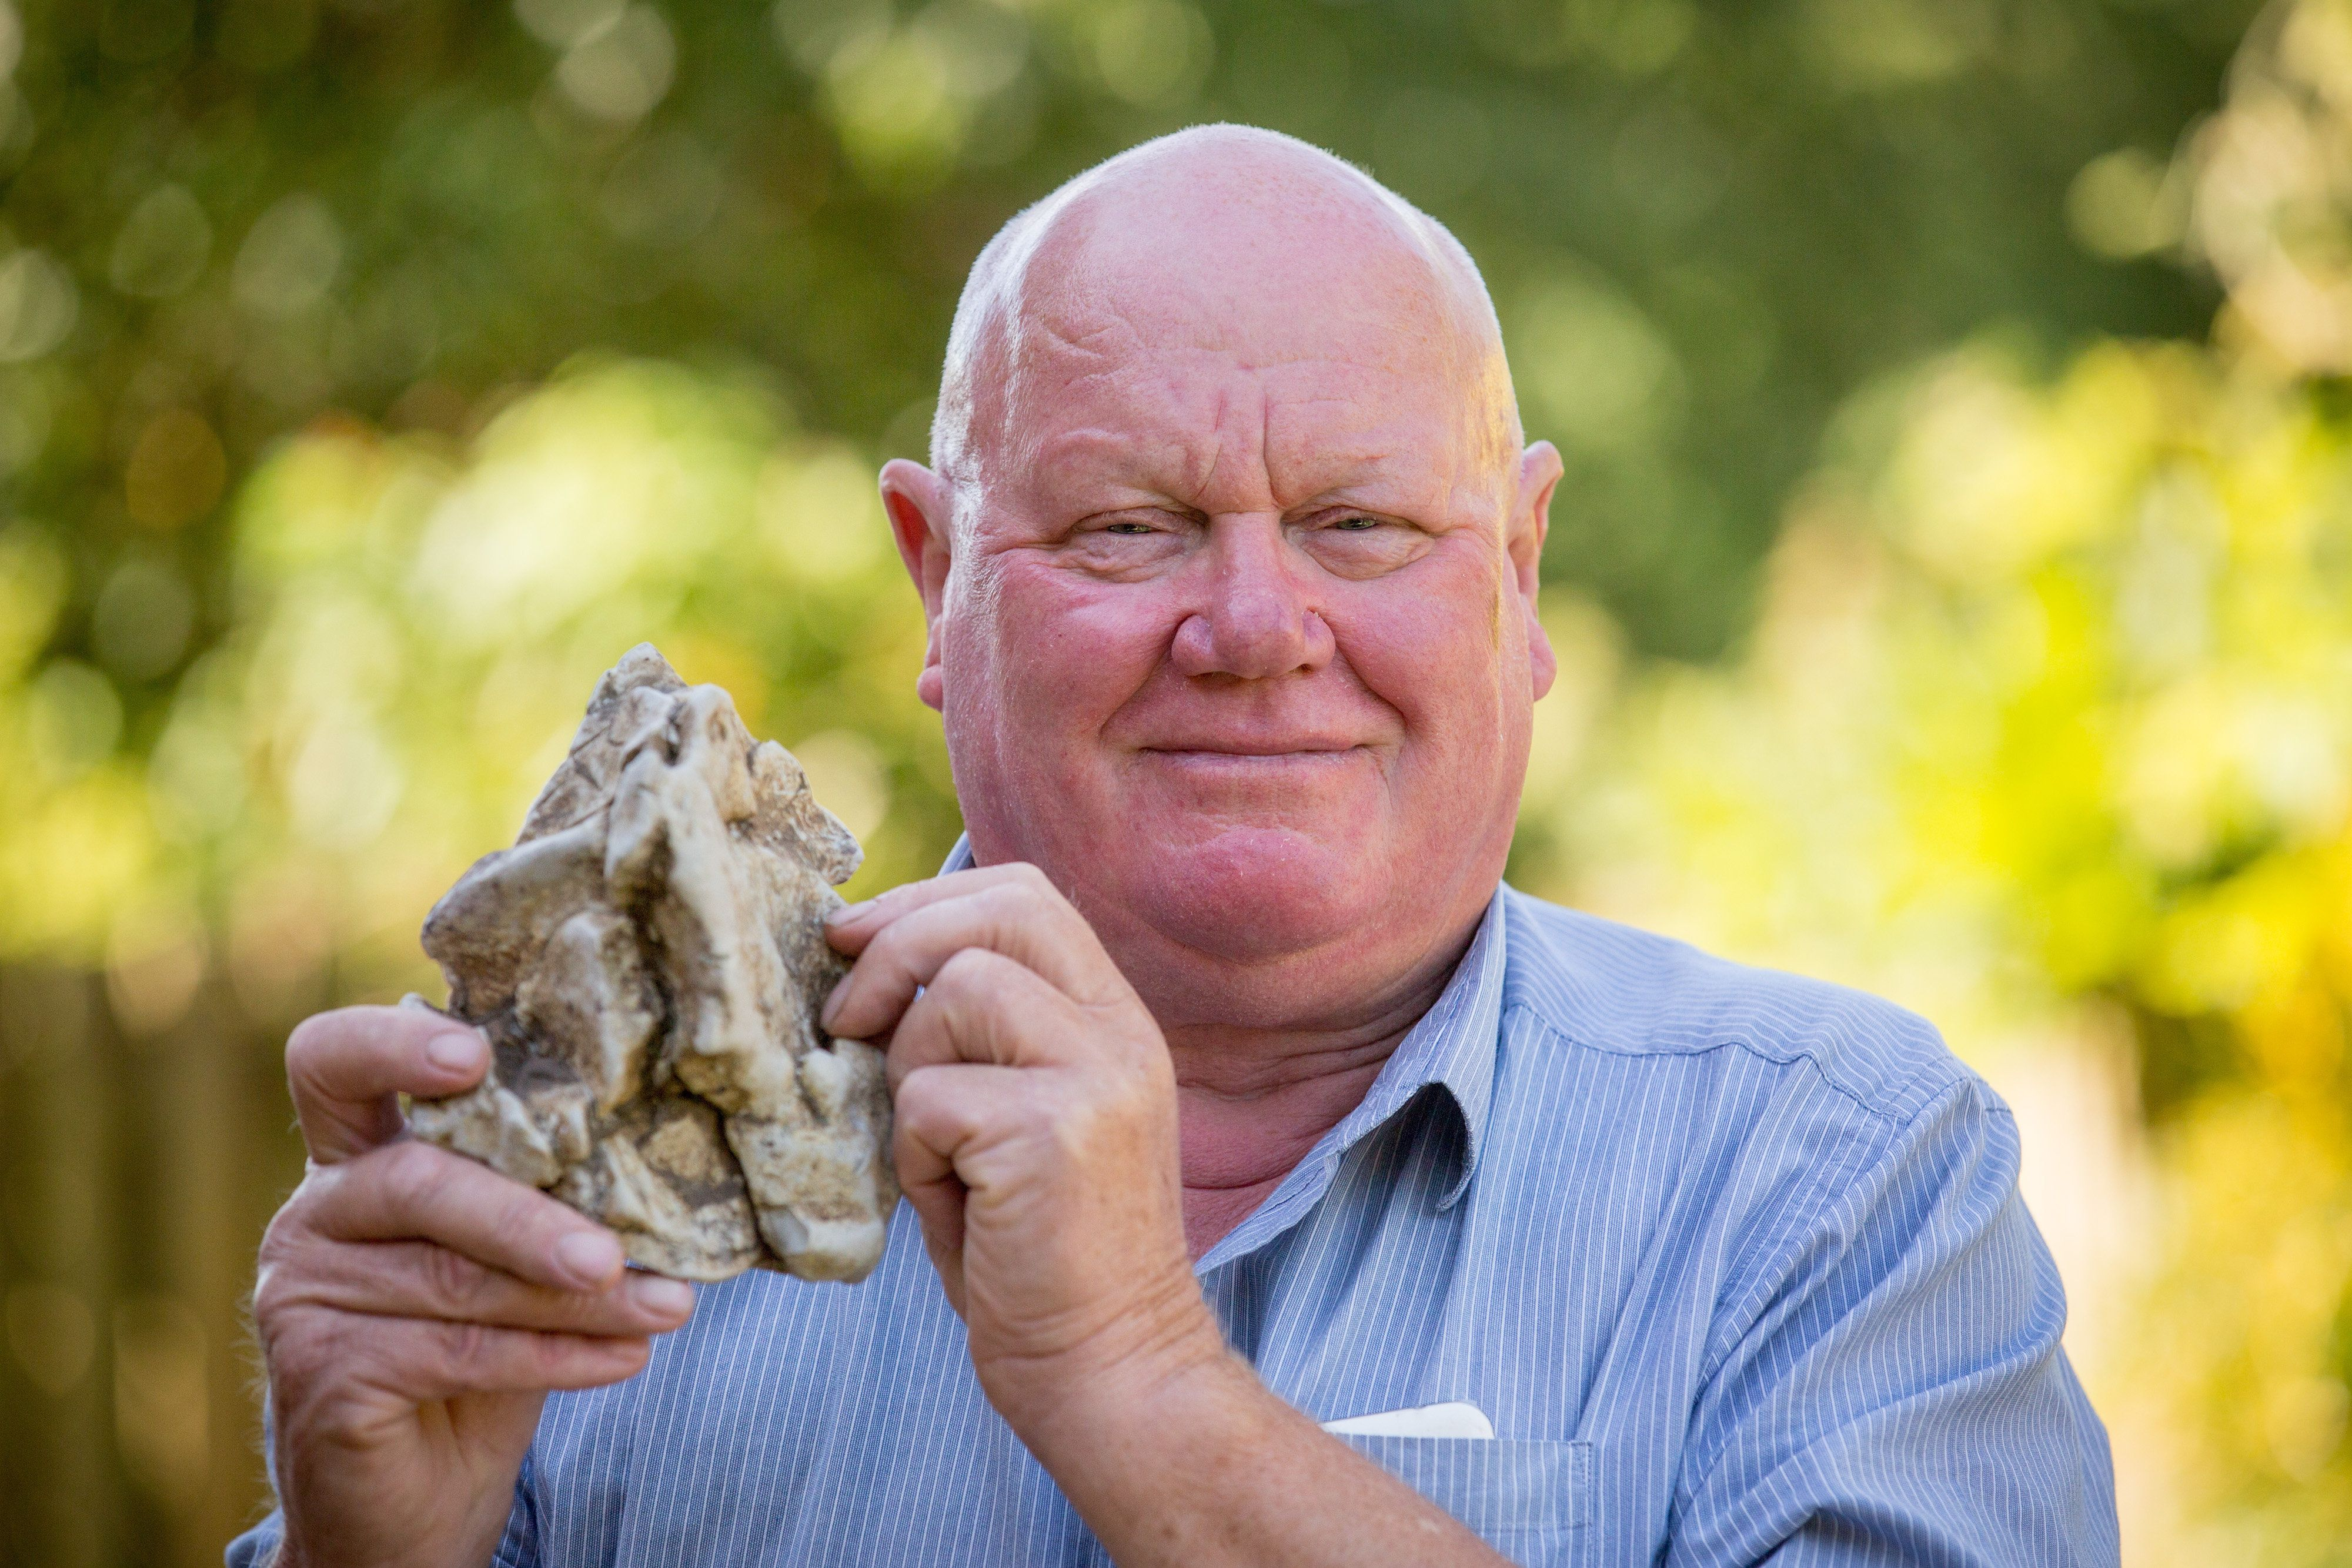 Alan Derrick 67 holds up a piece of whale vomit he found on a beach in Somerset UK Turns out it could be worth 73535